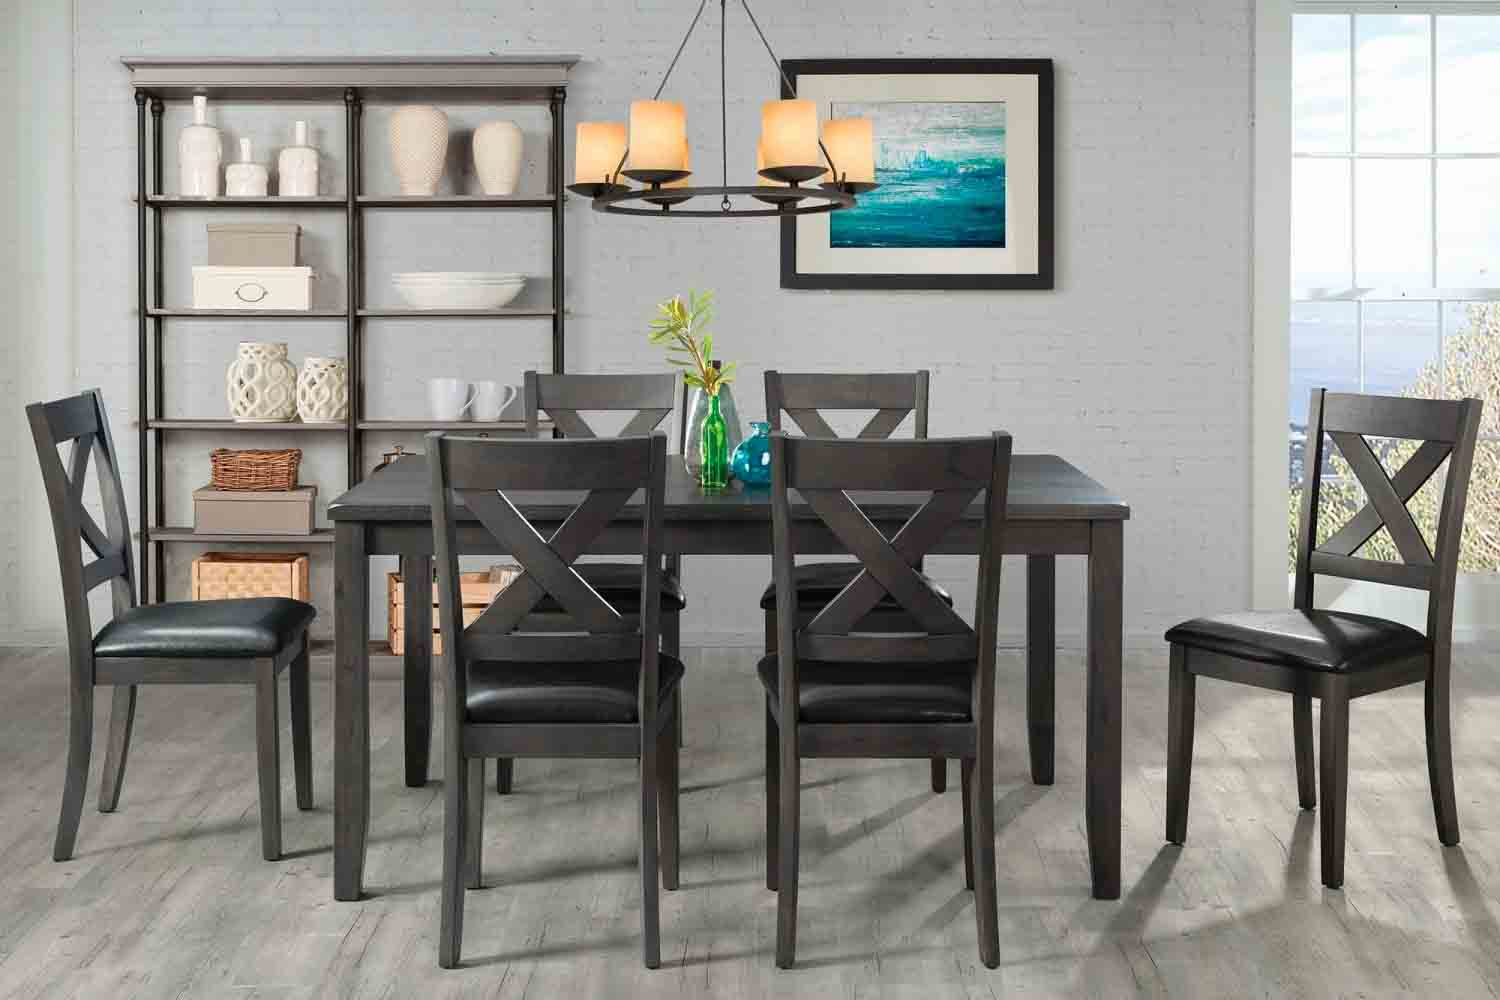 Furniture on Sale Near You | Mor Furniture for Less